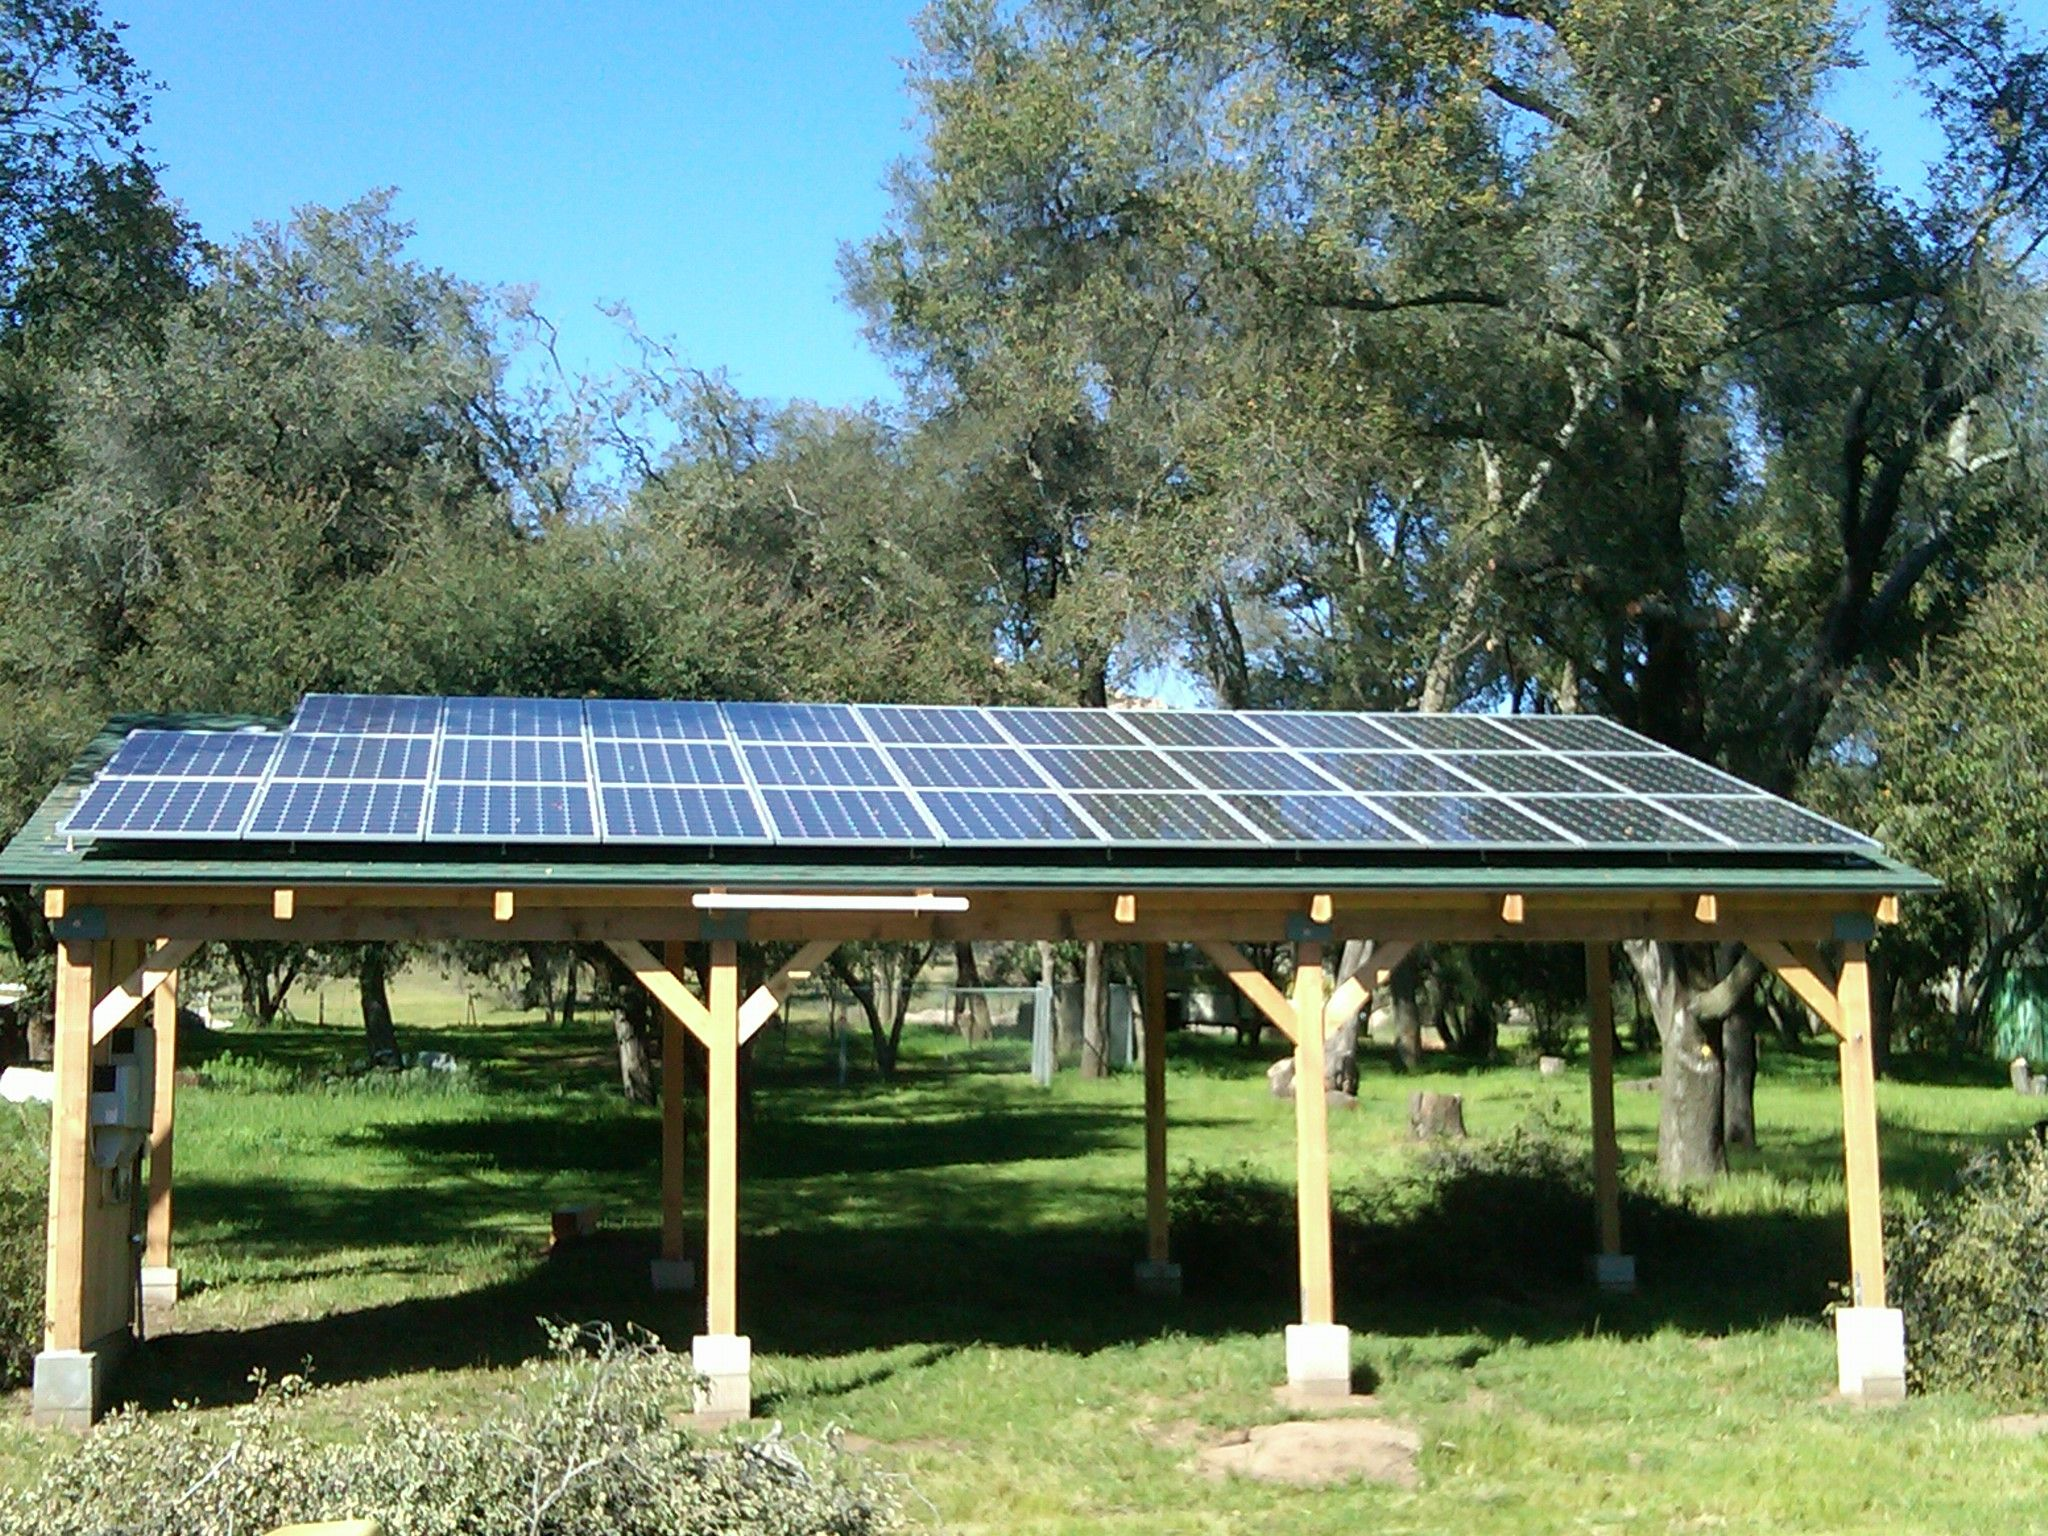 7 84 Special Carport Mount Solar Pv System Designed And Installed By Solare Energy Solar Solar Panels Best Solar Panels